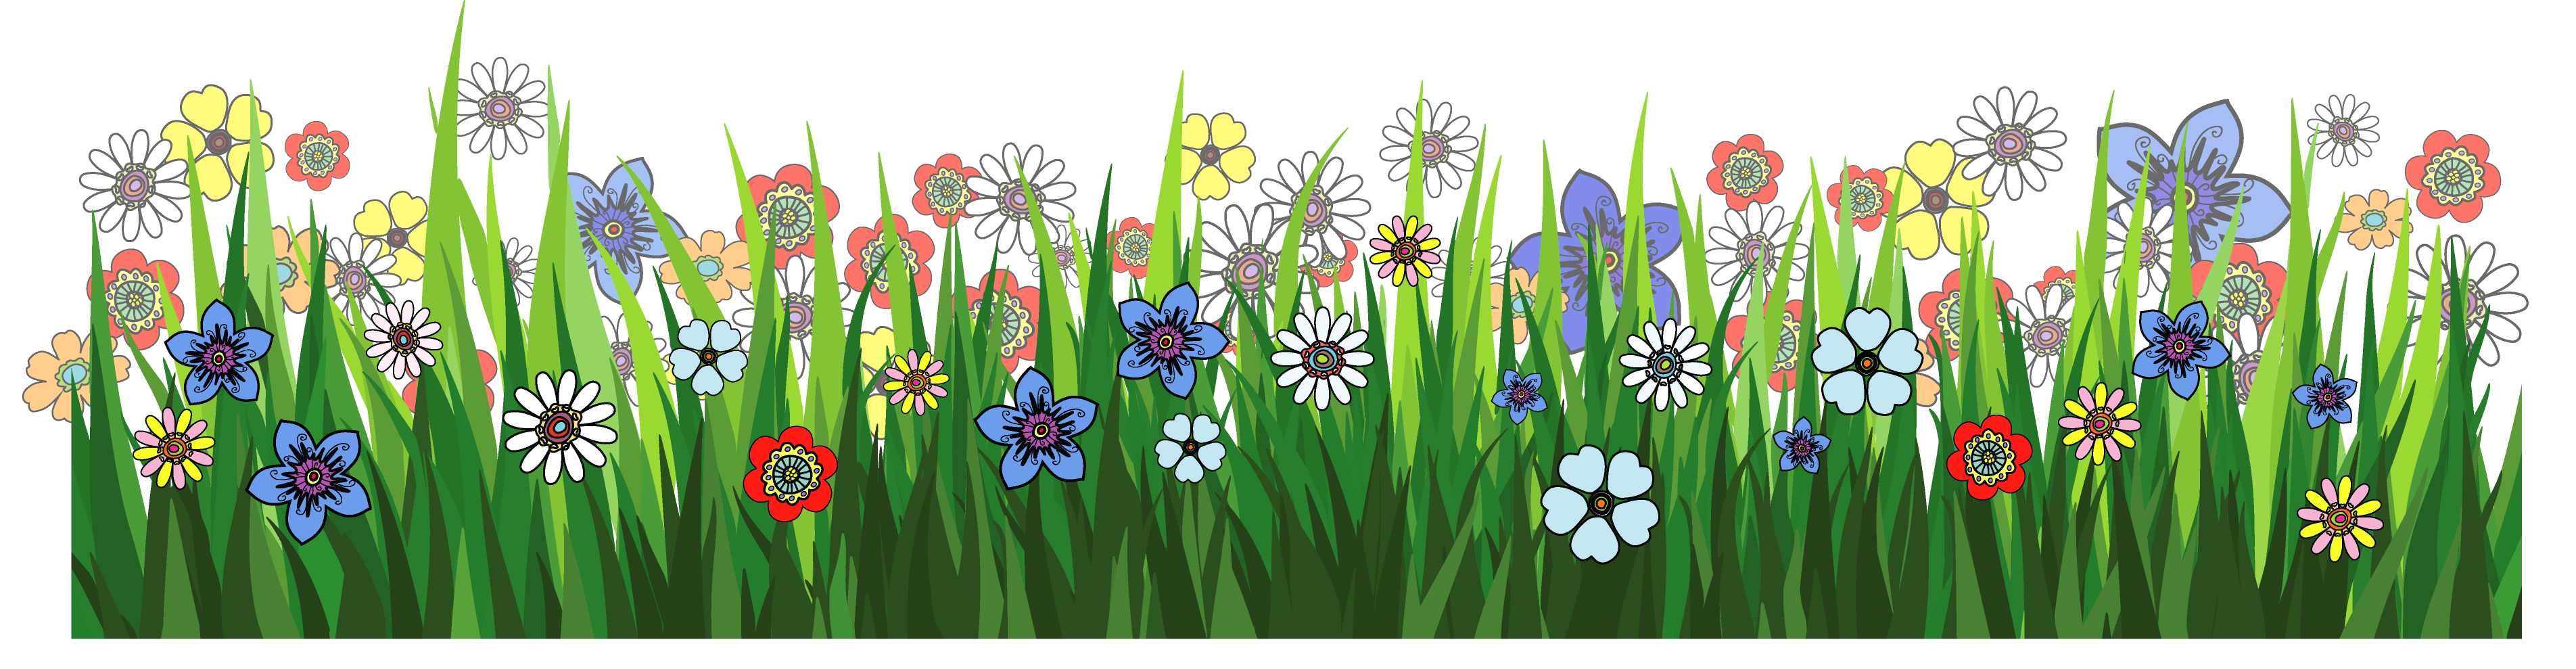 Flowers garden png. Grass ground with picture